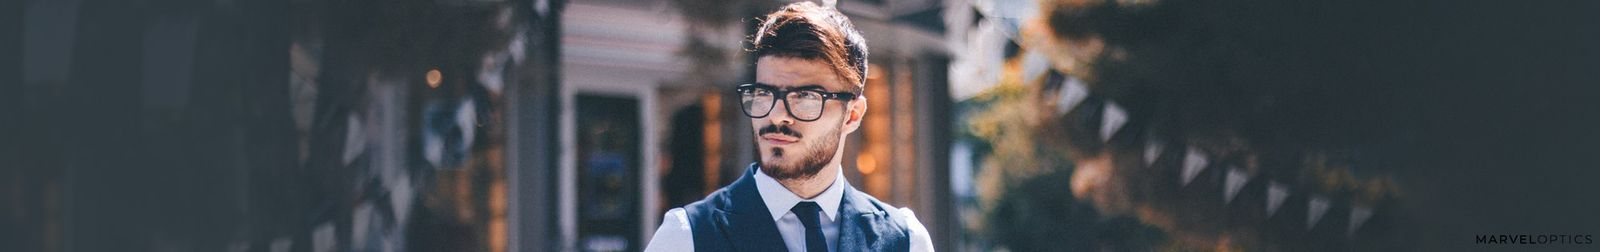 Top 10 Men's Prescription Glasses Header